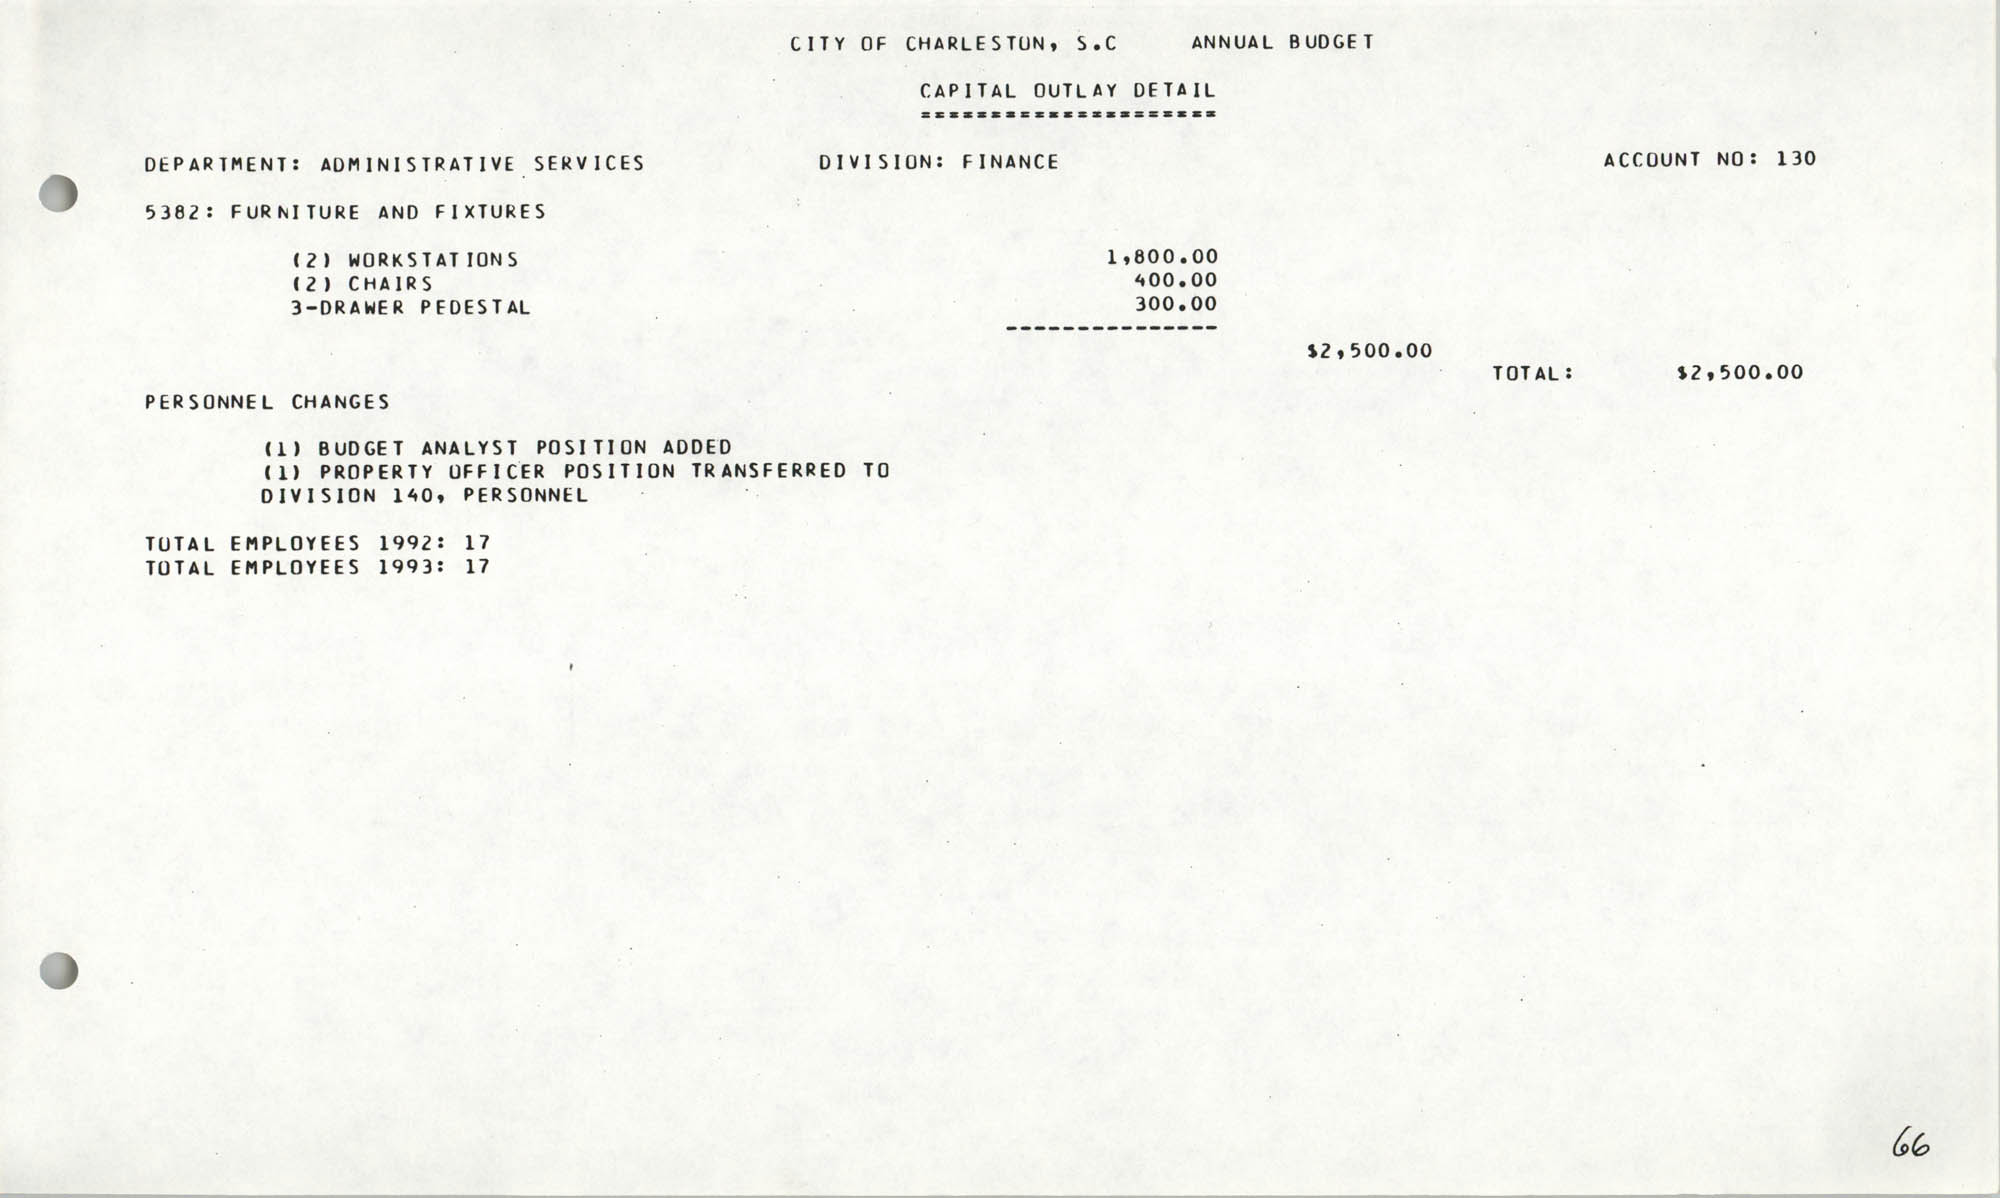 The City Council of Charleston, South Carolina, 1993 Budget, Page 66